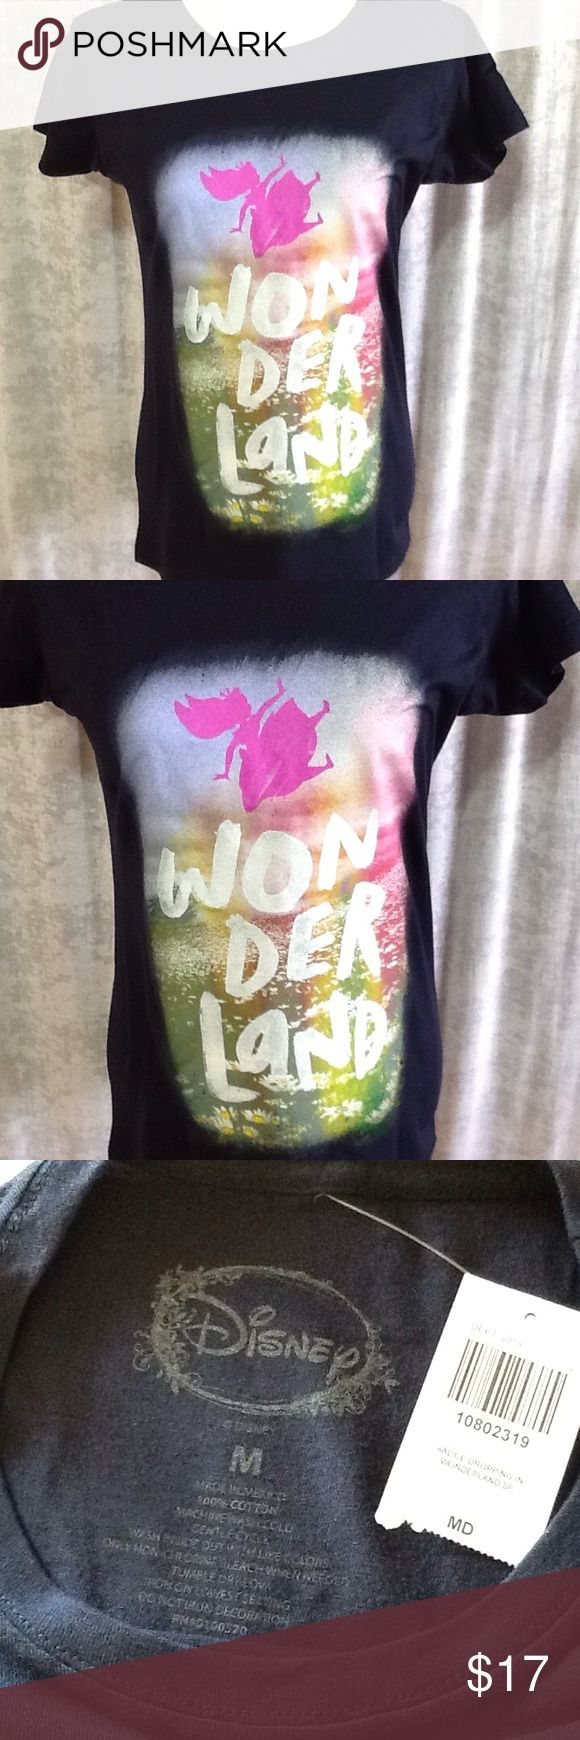 "NWT!  Disney Alice in Wonderland Falling T-Shirt Fitted navy tee from Disney's Alice in Wonderland with a ""Wonderland"" text design on front featuring a falling Alice silhouette design over a field of daisies. * 100% cotton * Wash cold; dry low * Imported NEW - NEVER WORN Disney Tops Tees - Short Sleeve"